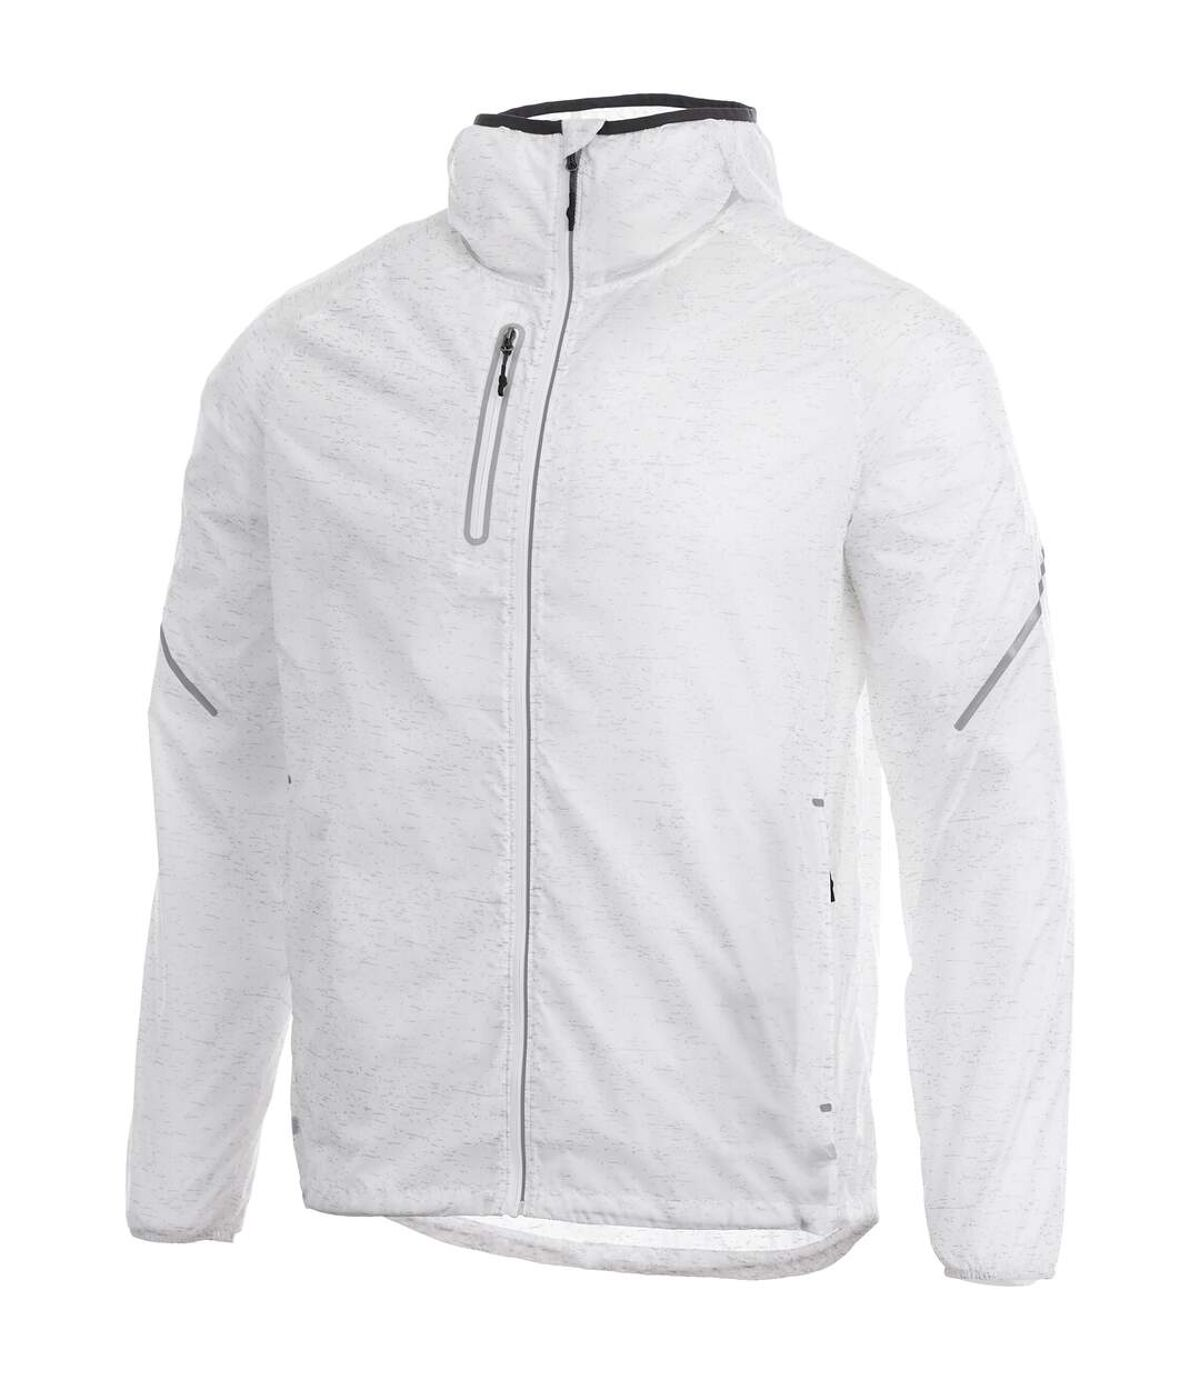 Elevate Mens Signal Reflective Packable Jacket (White) - UTPF1930